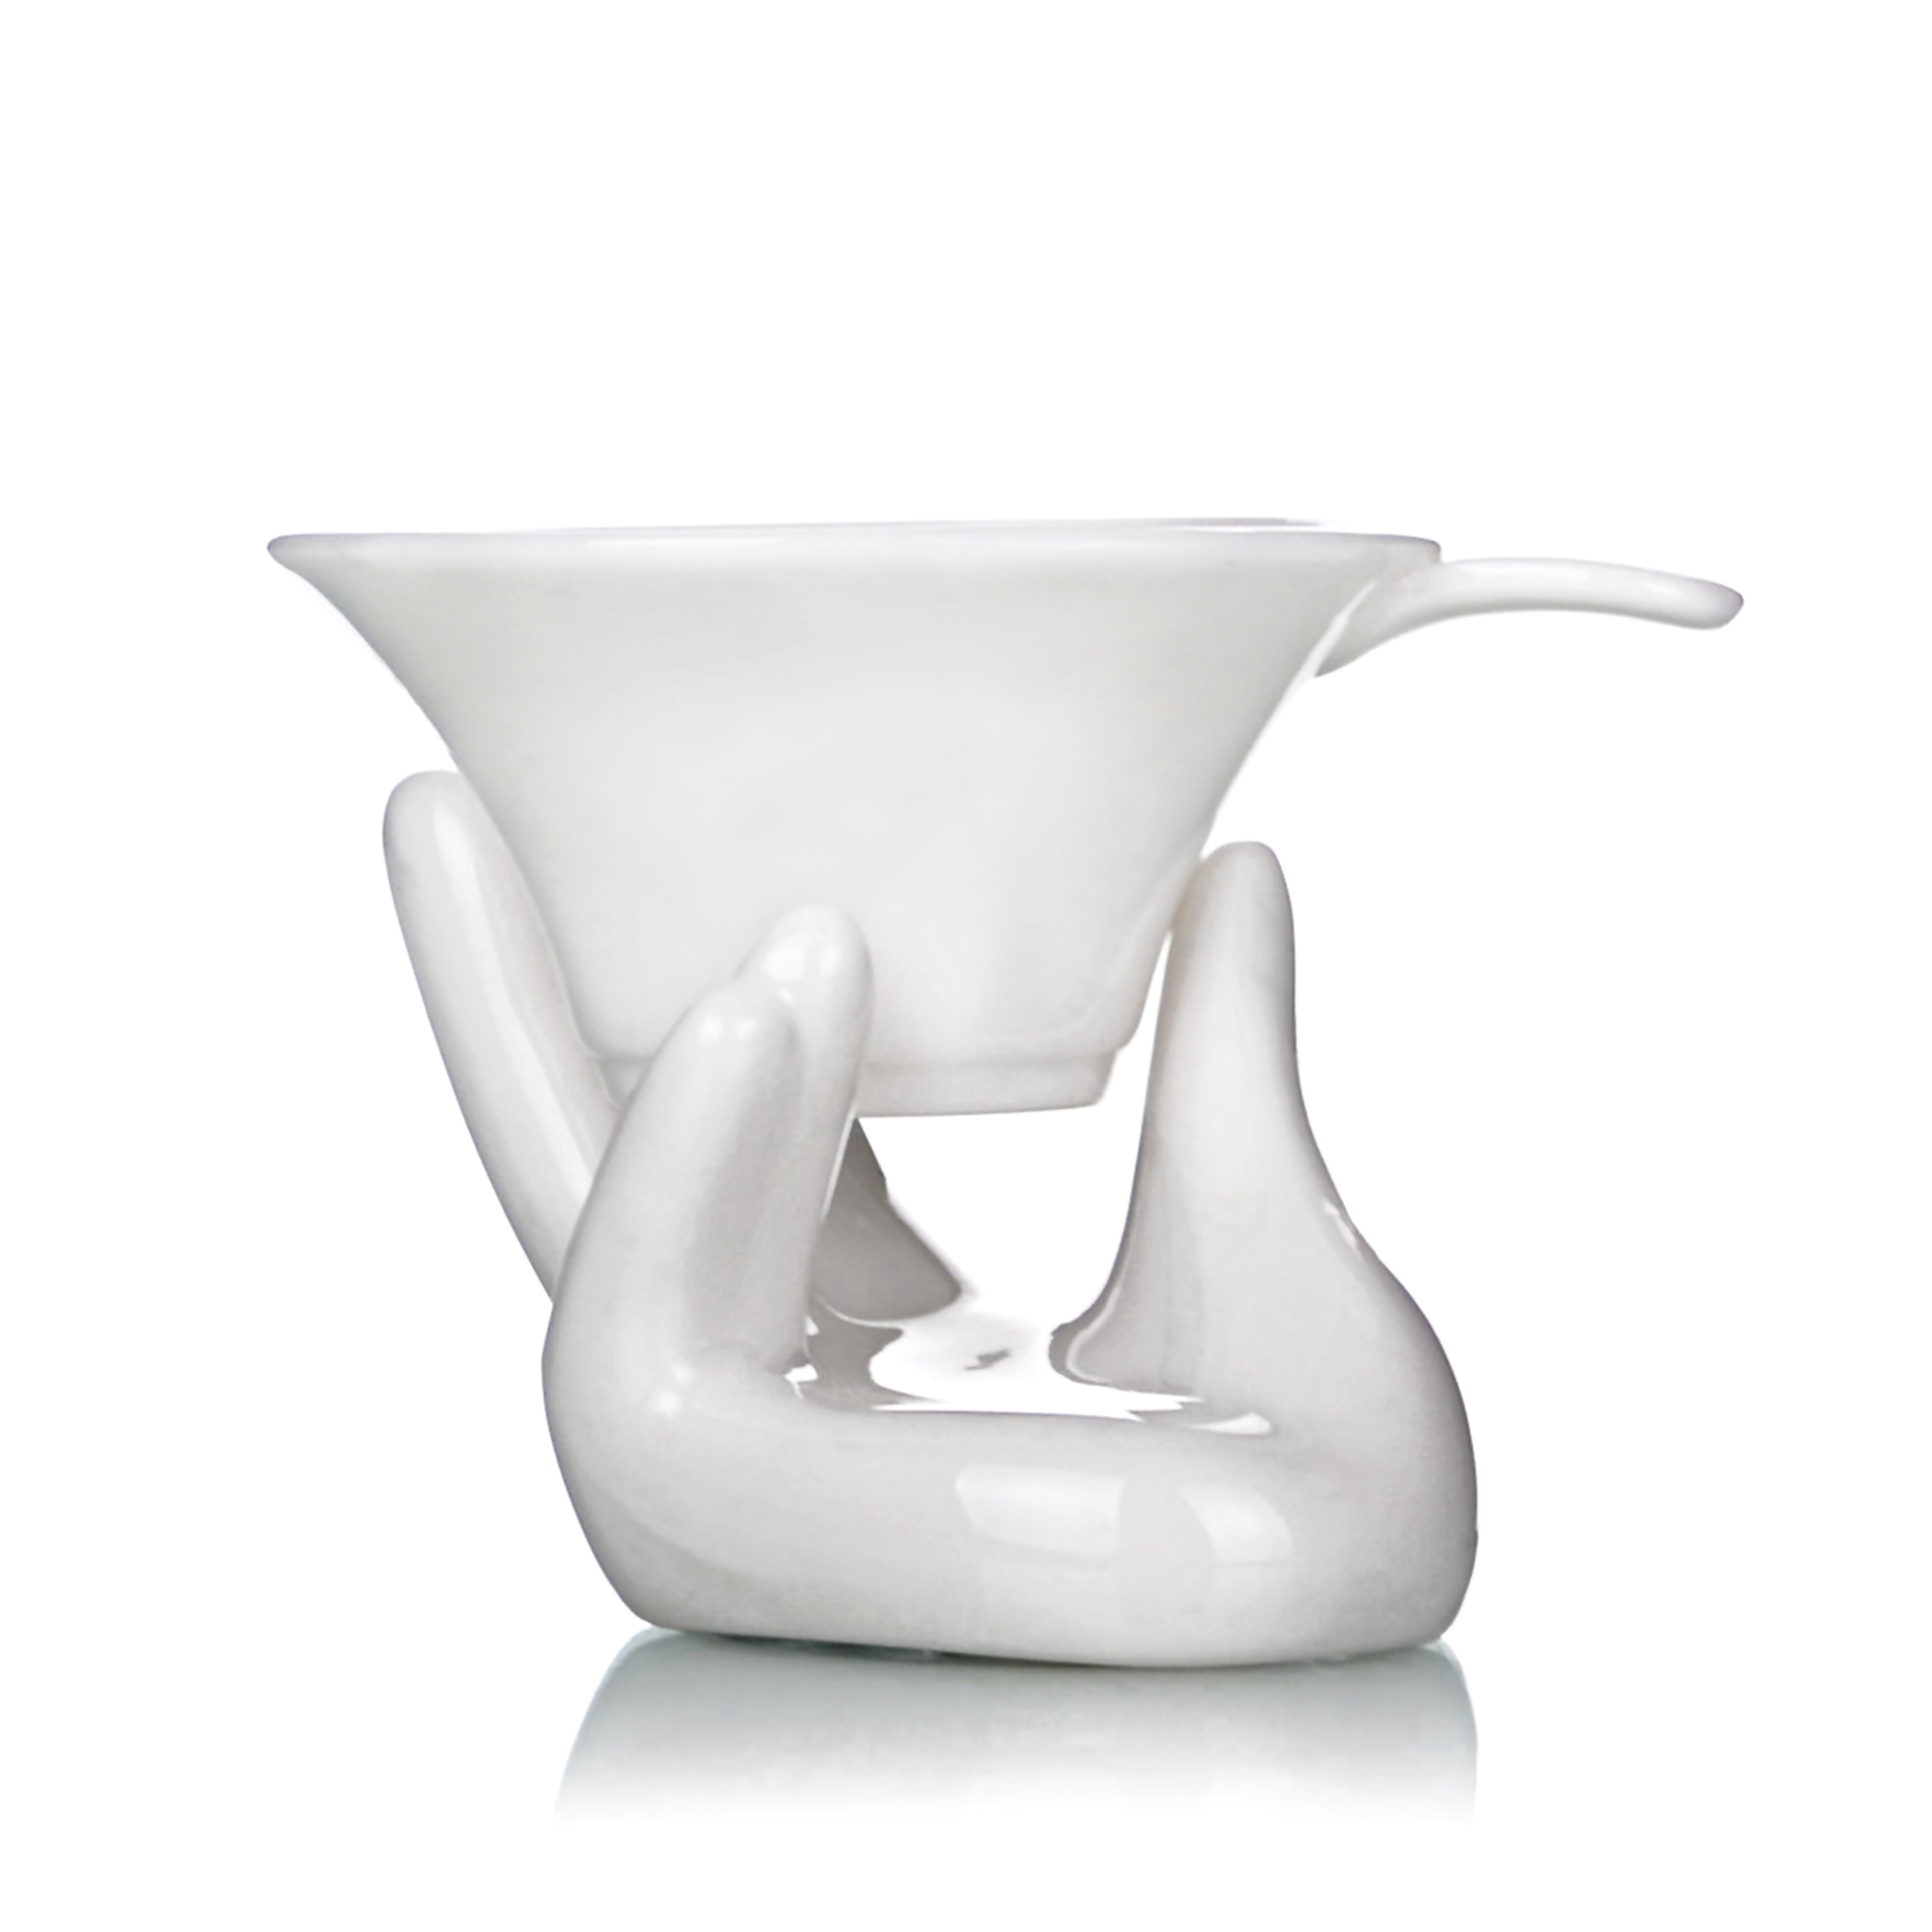 1x White Porcelain Fine Mesh Kungfu Tea Funnel Strainer Filter W/ Holder Stand Health Tea Parts Accessories Tools Gifts